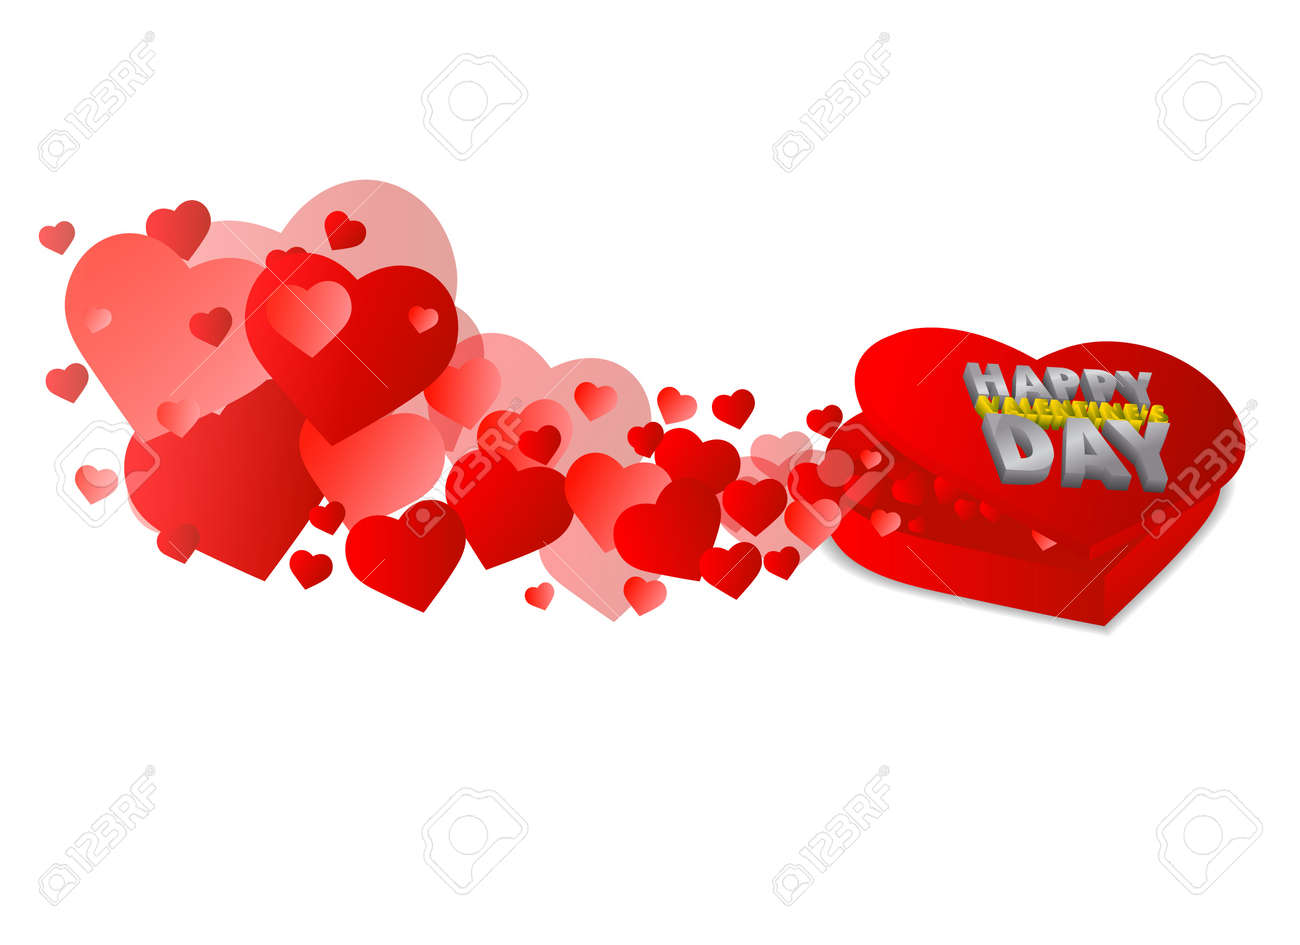 Heart shape box with Happy Valentine's day text Stock Vector - 11703638